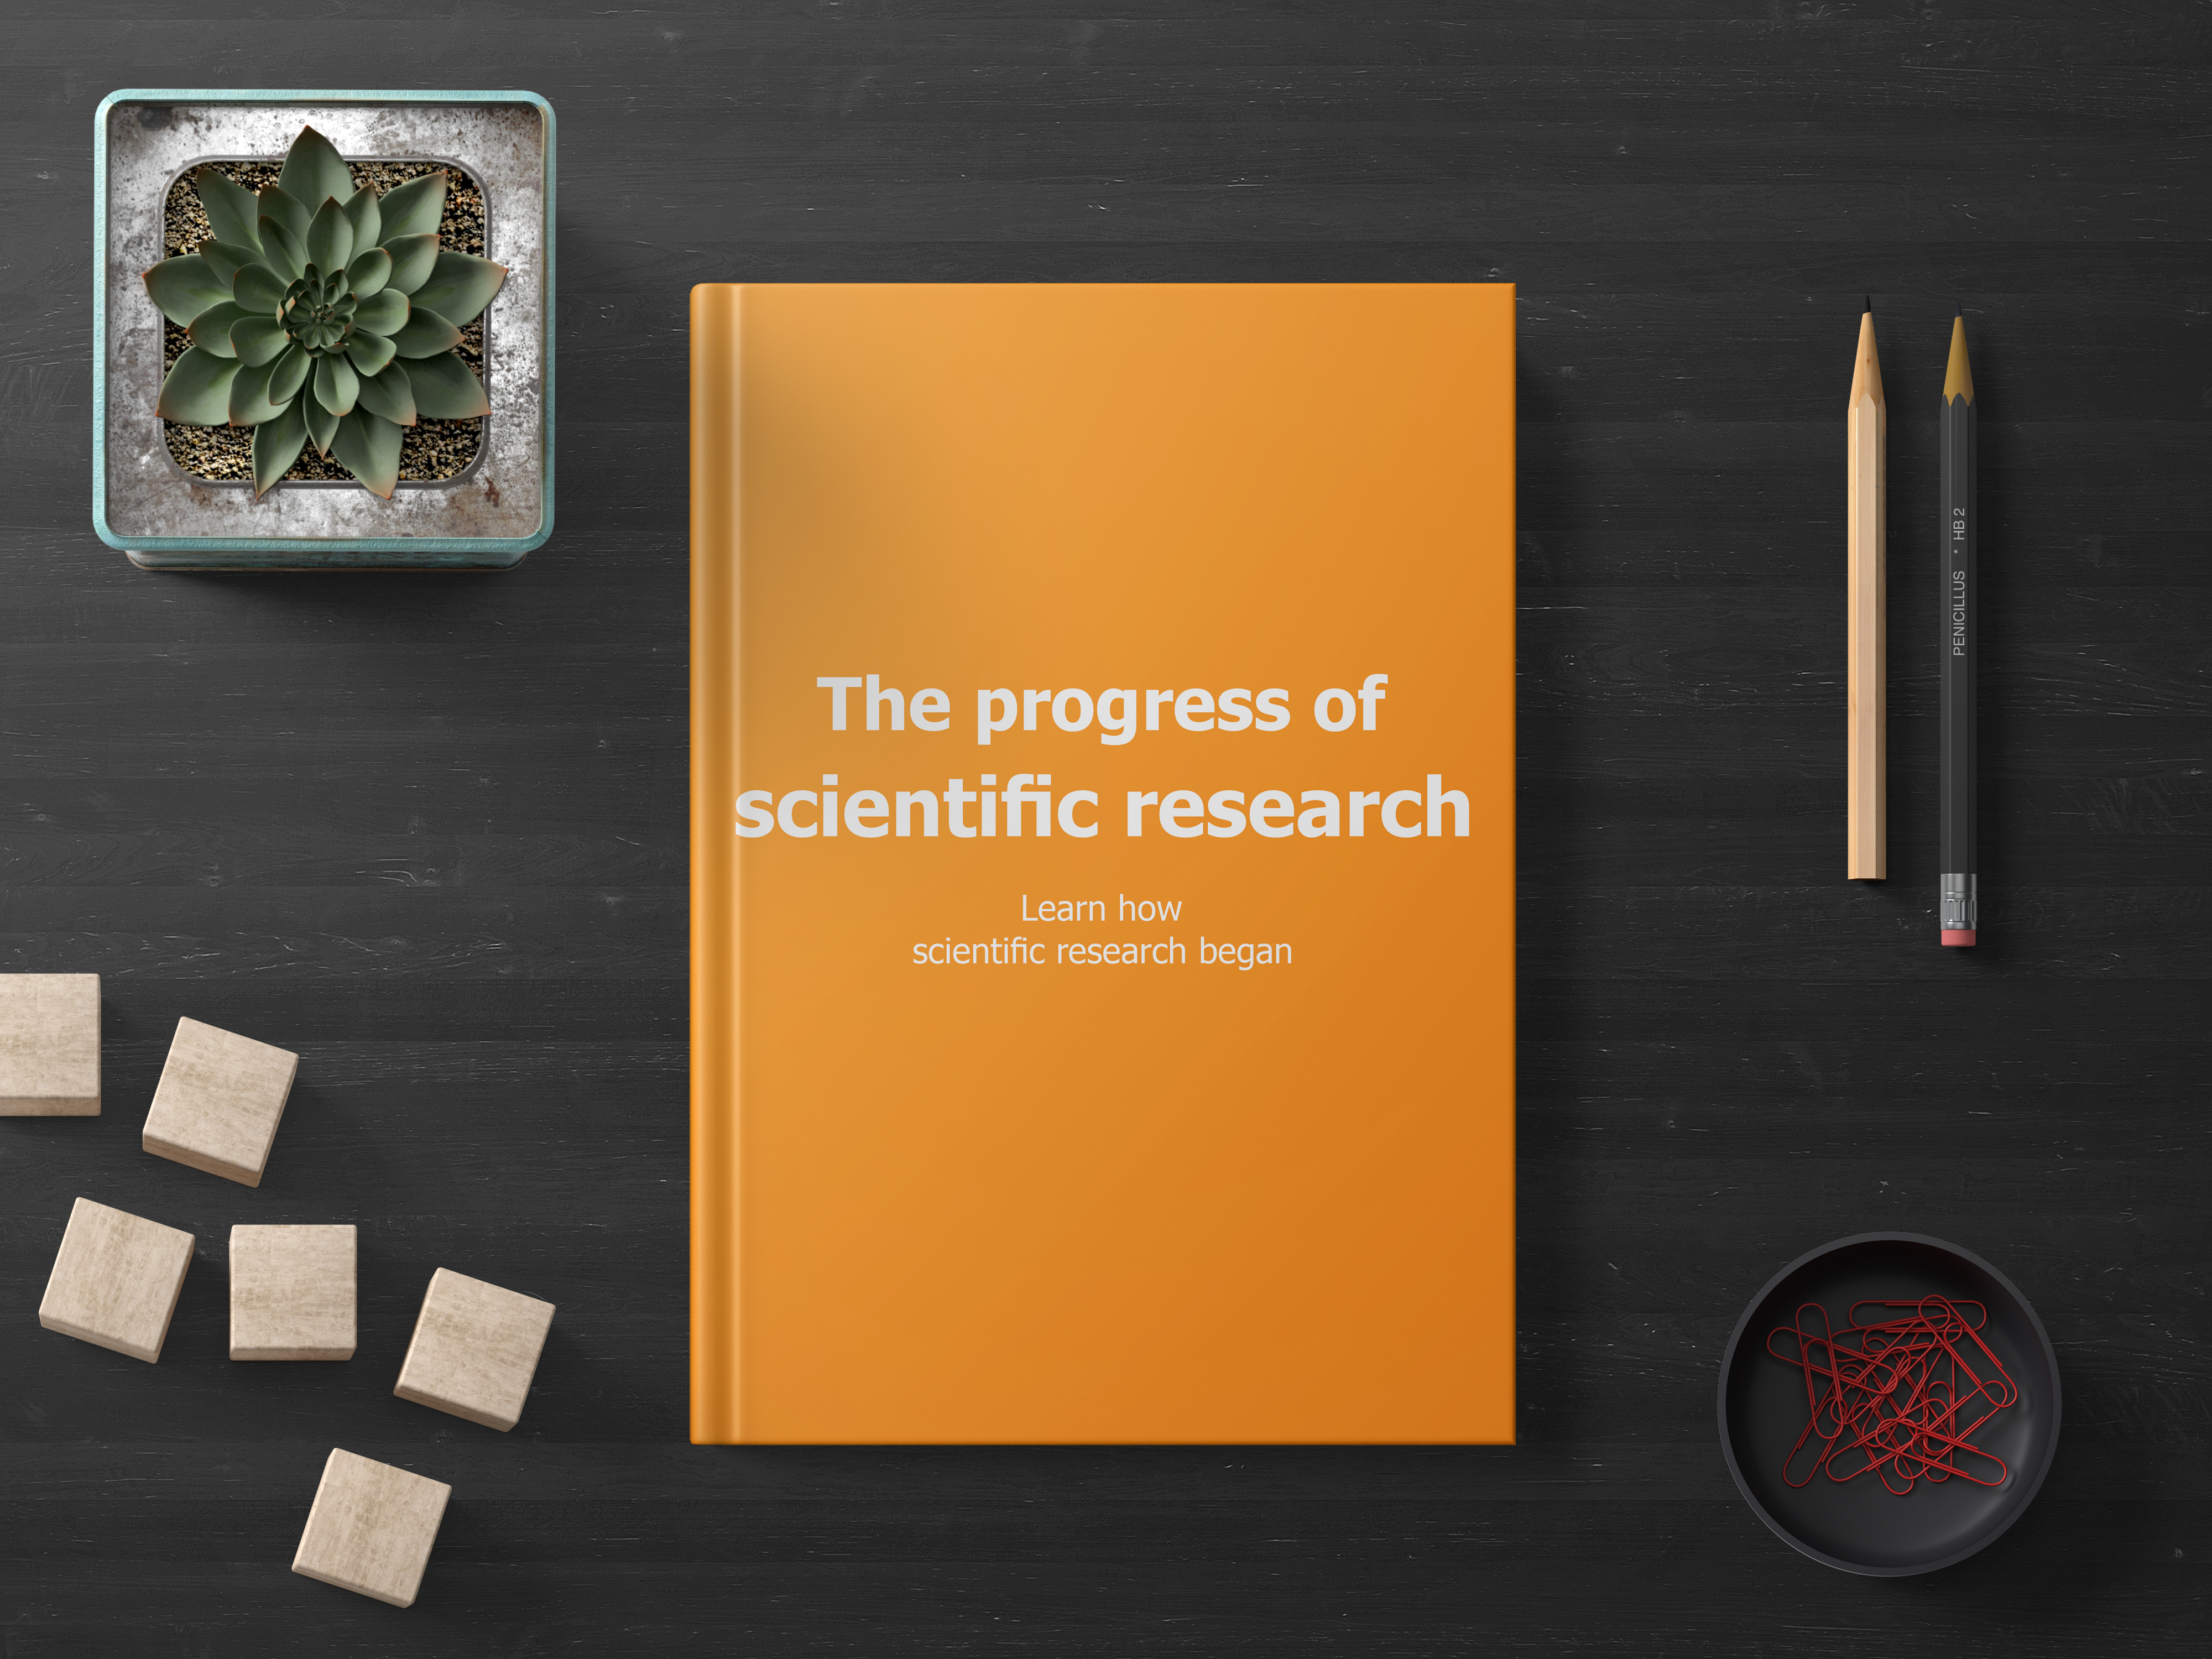 The progress of scientific research - Payhip